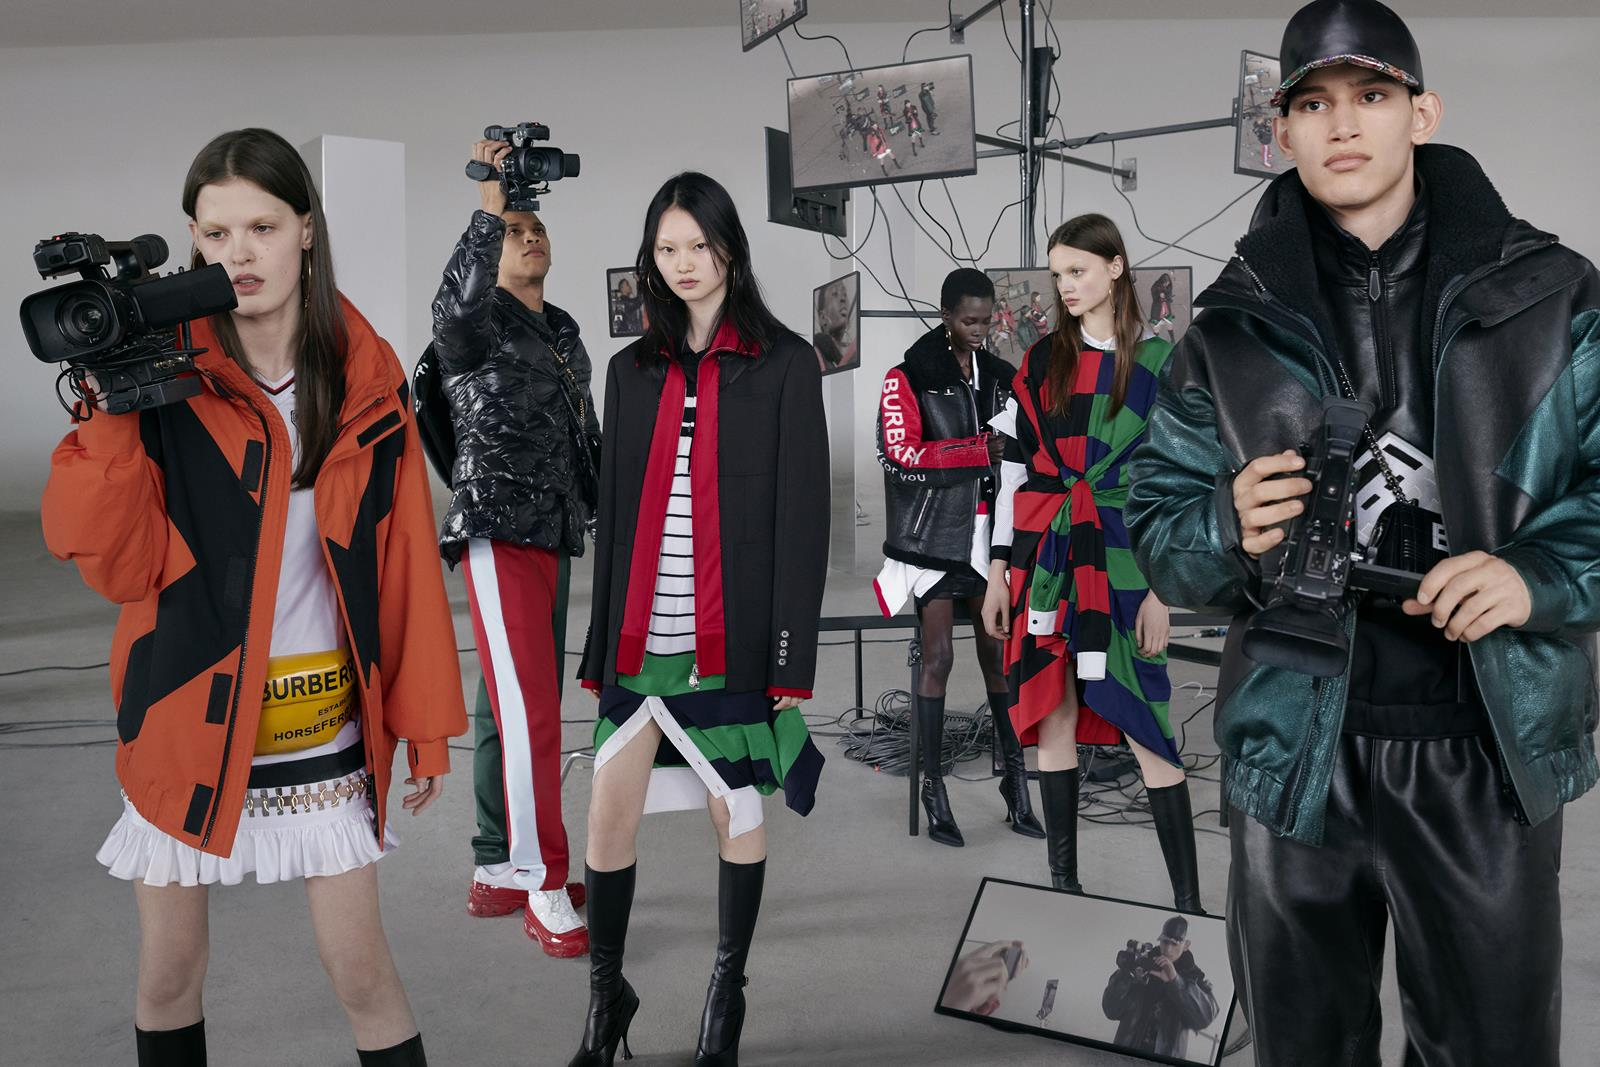 Anna Ross, Junior Vasquez, He Cong, Mammina Aker, Shayna McNeil and Alexis Chaparro photographed by Nick Knight for the Burberry Autumn_Winter 2019 campaign c Courtesy of Burberry _ Nick Knight